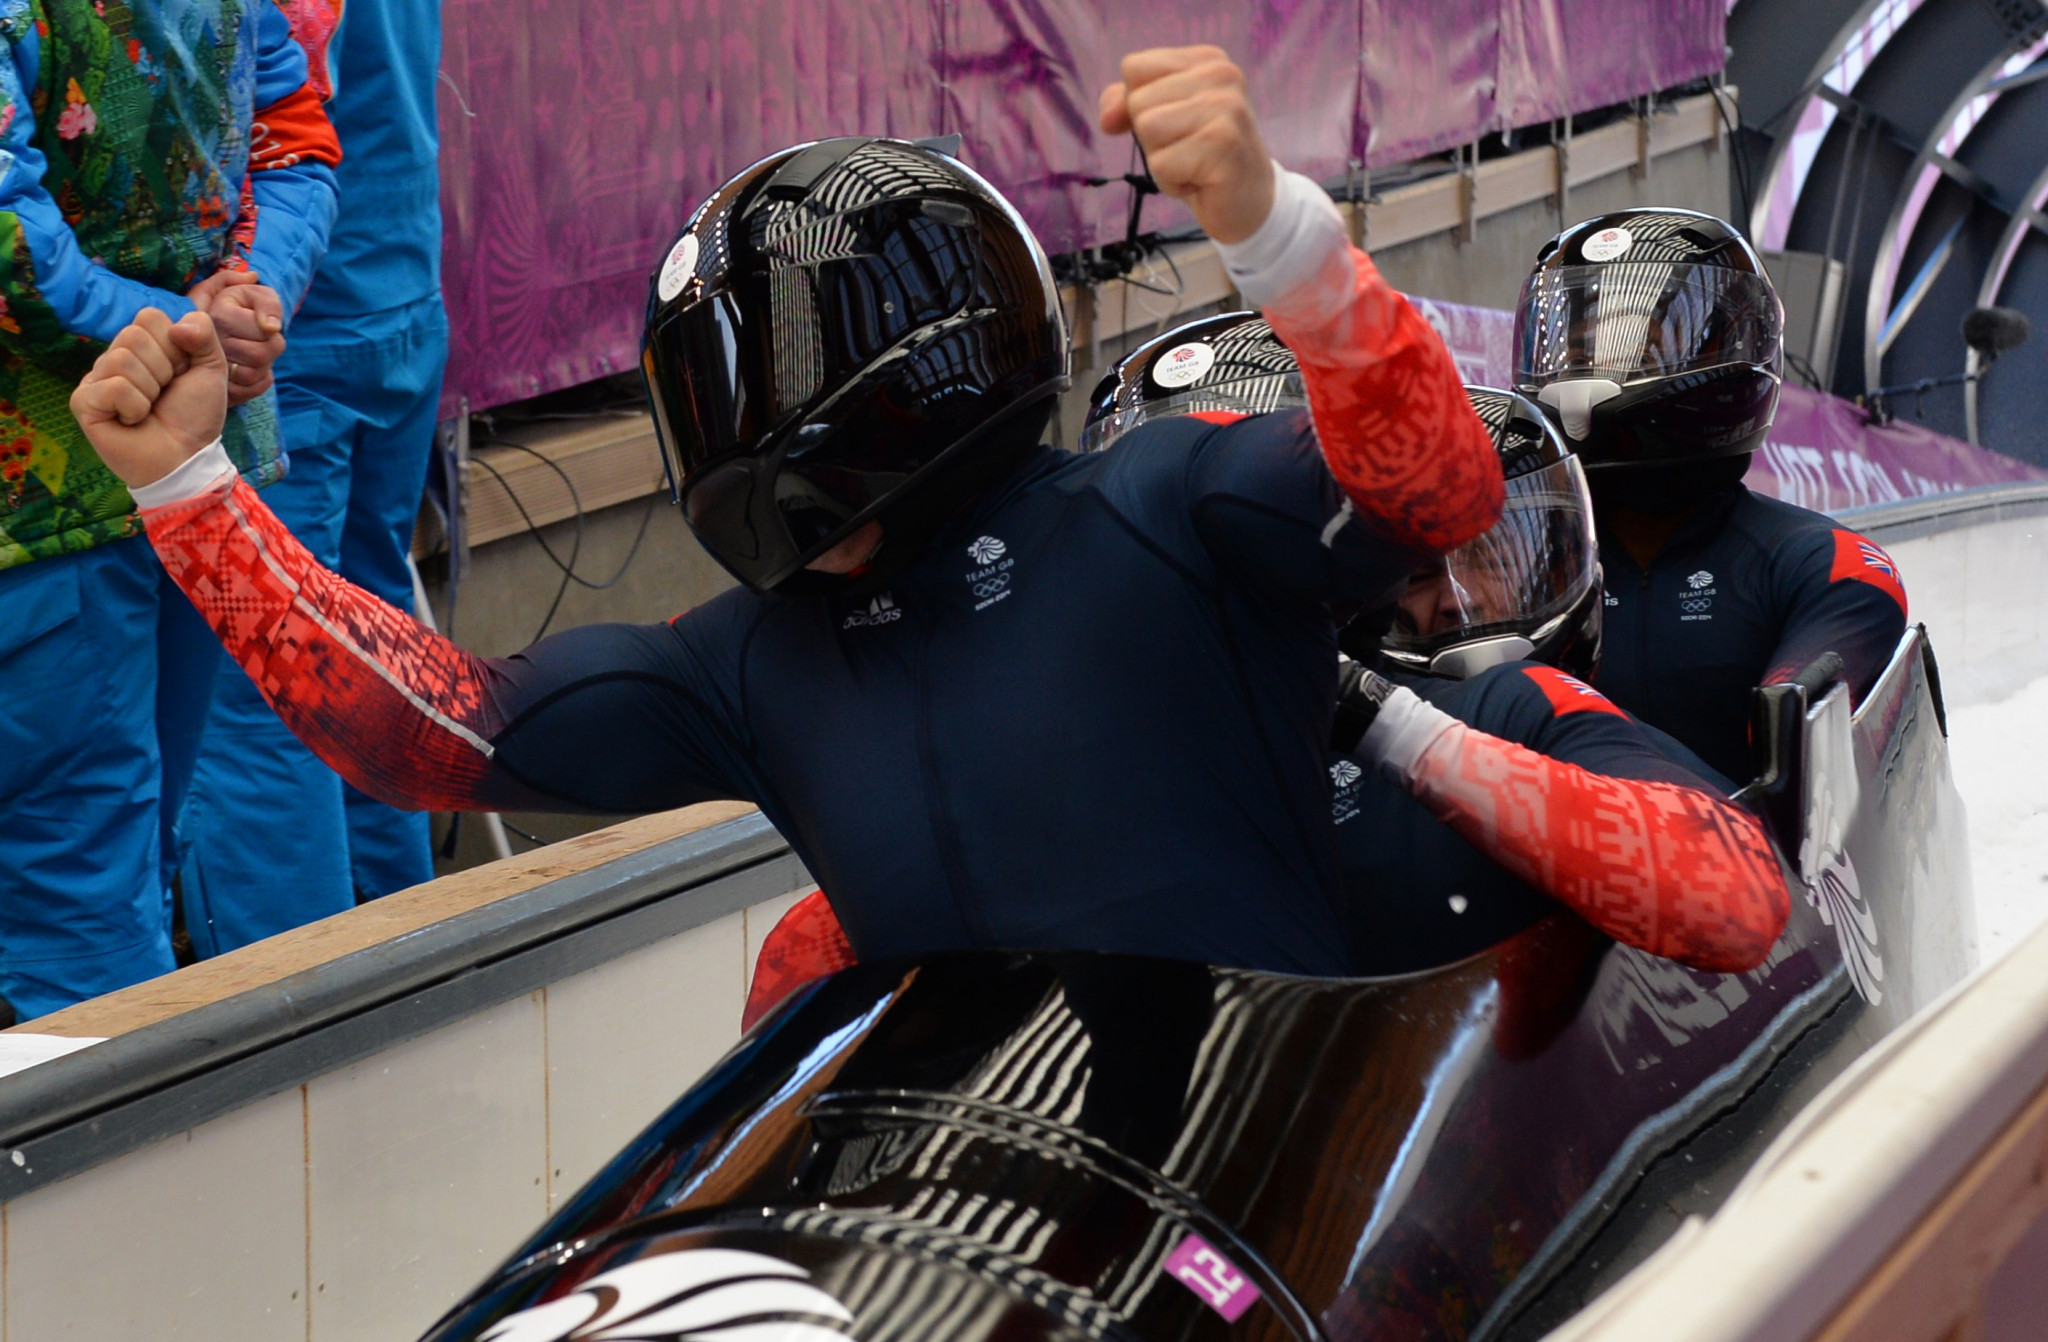 British bobsleigh team to receive Sochi 2014 bronze medals